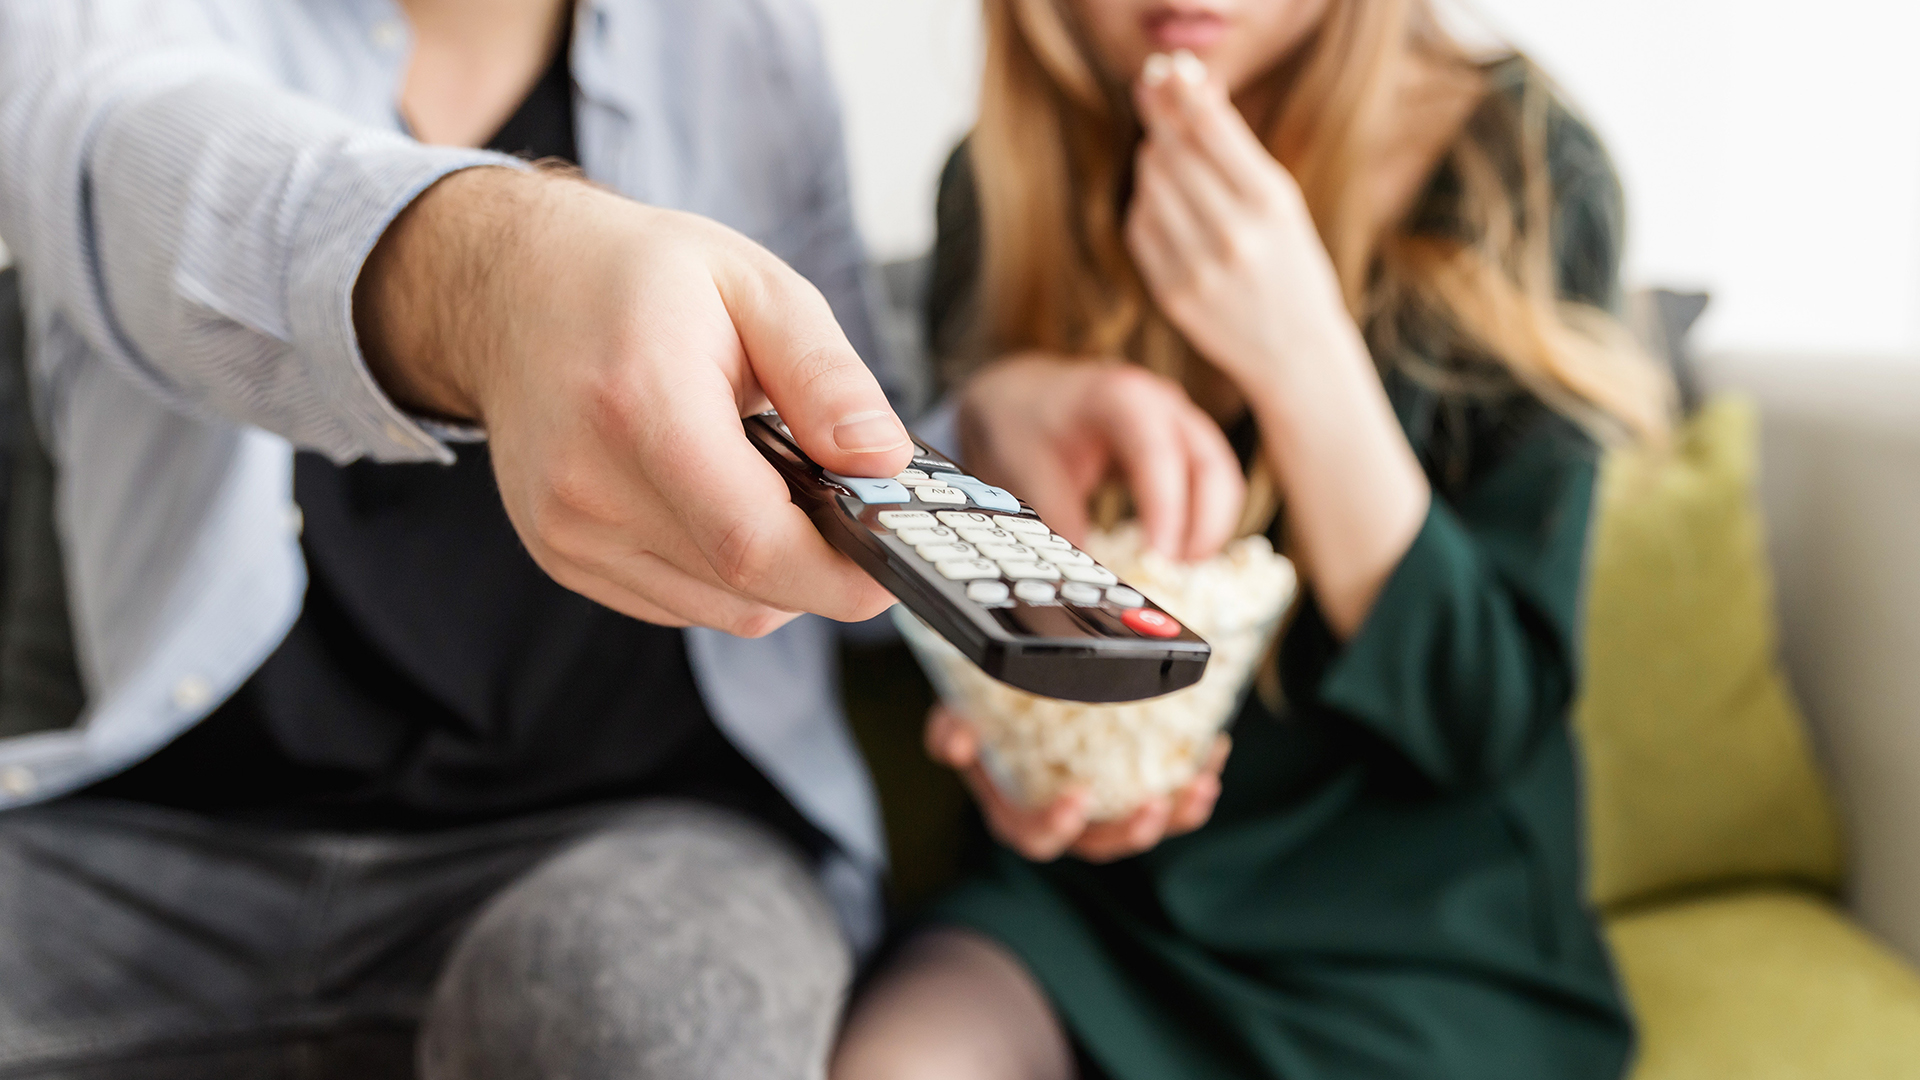 couple with remote control looking at TV